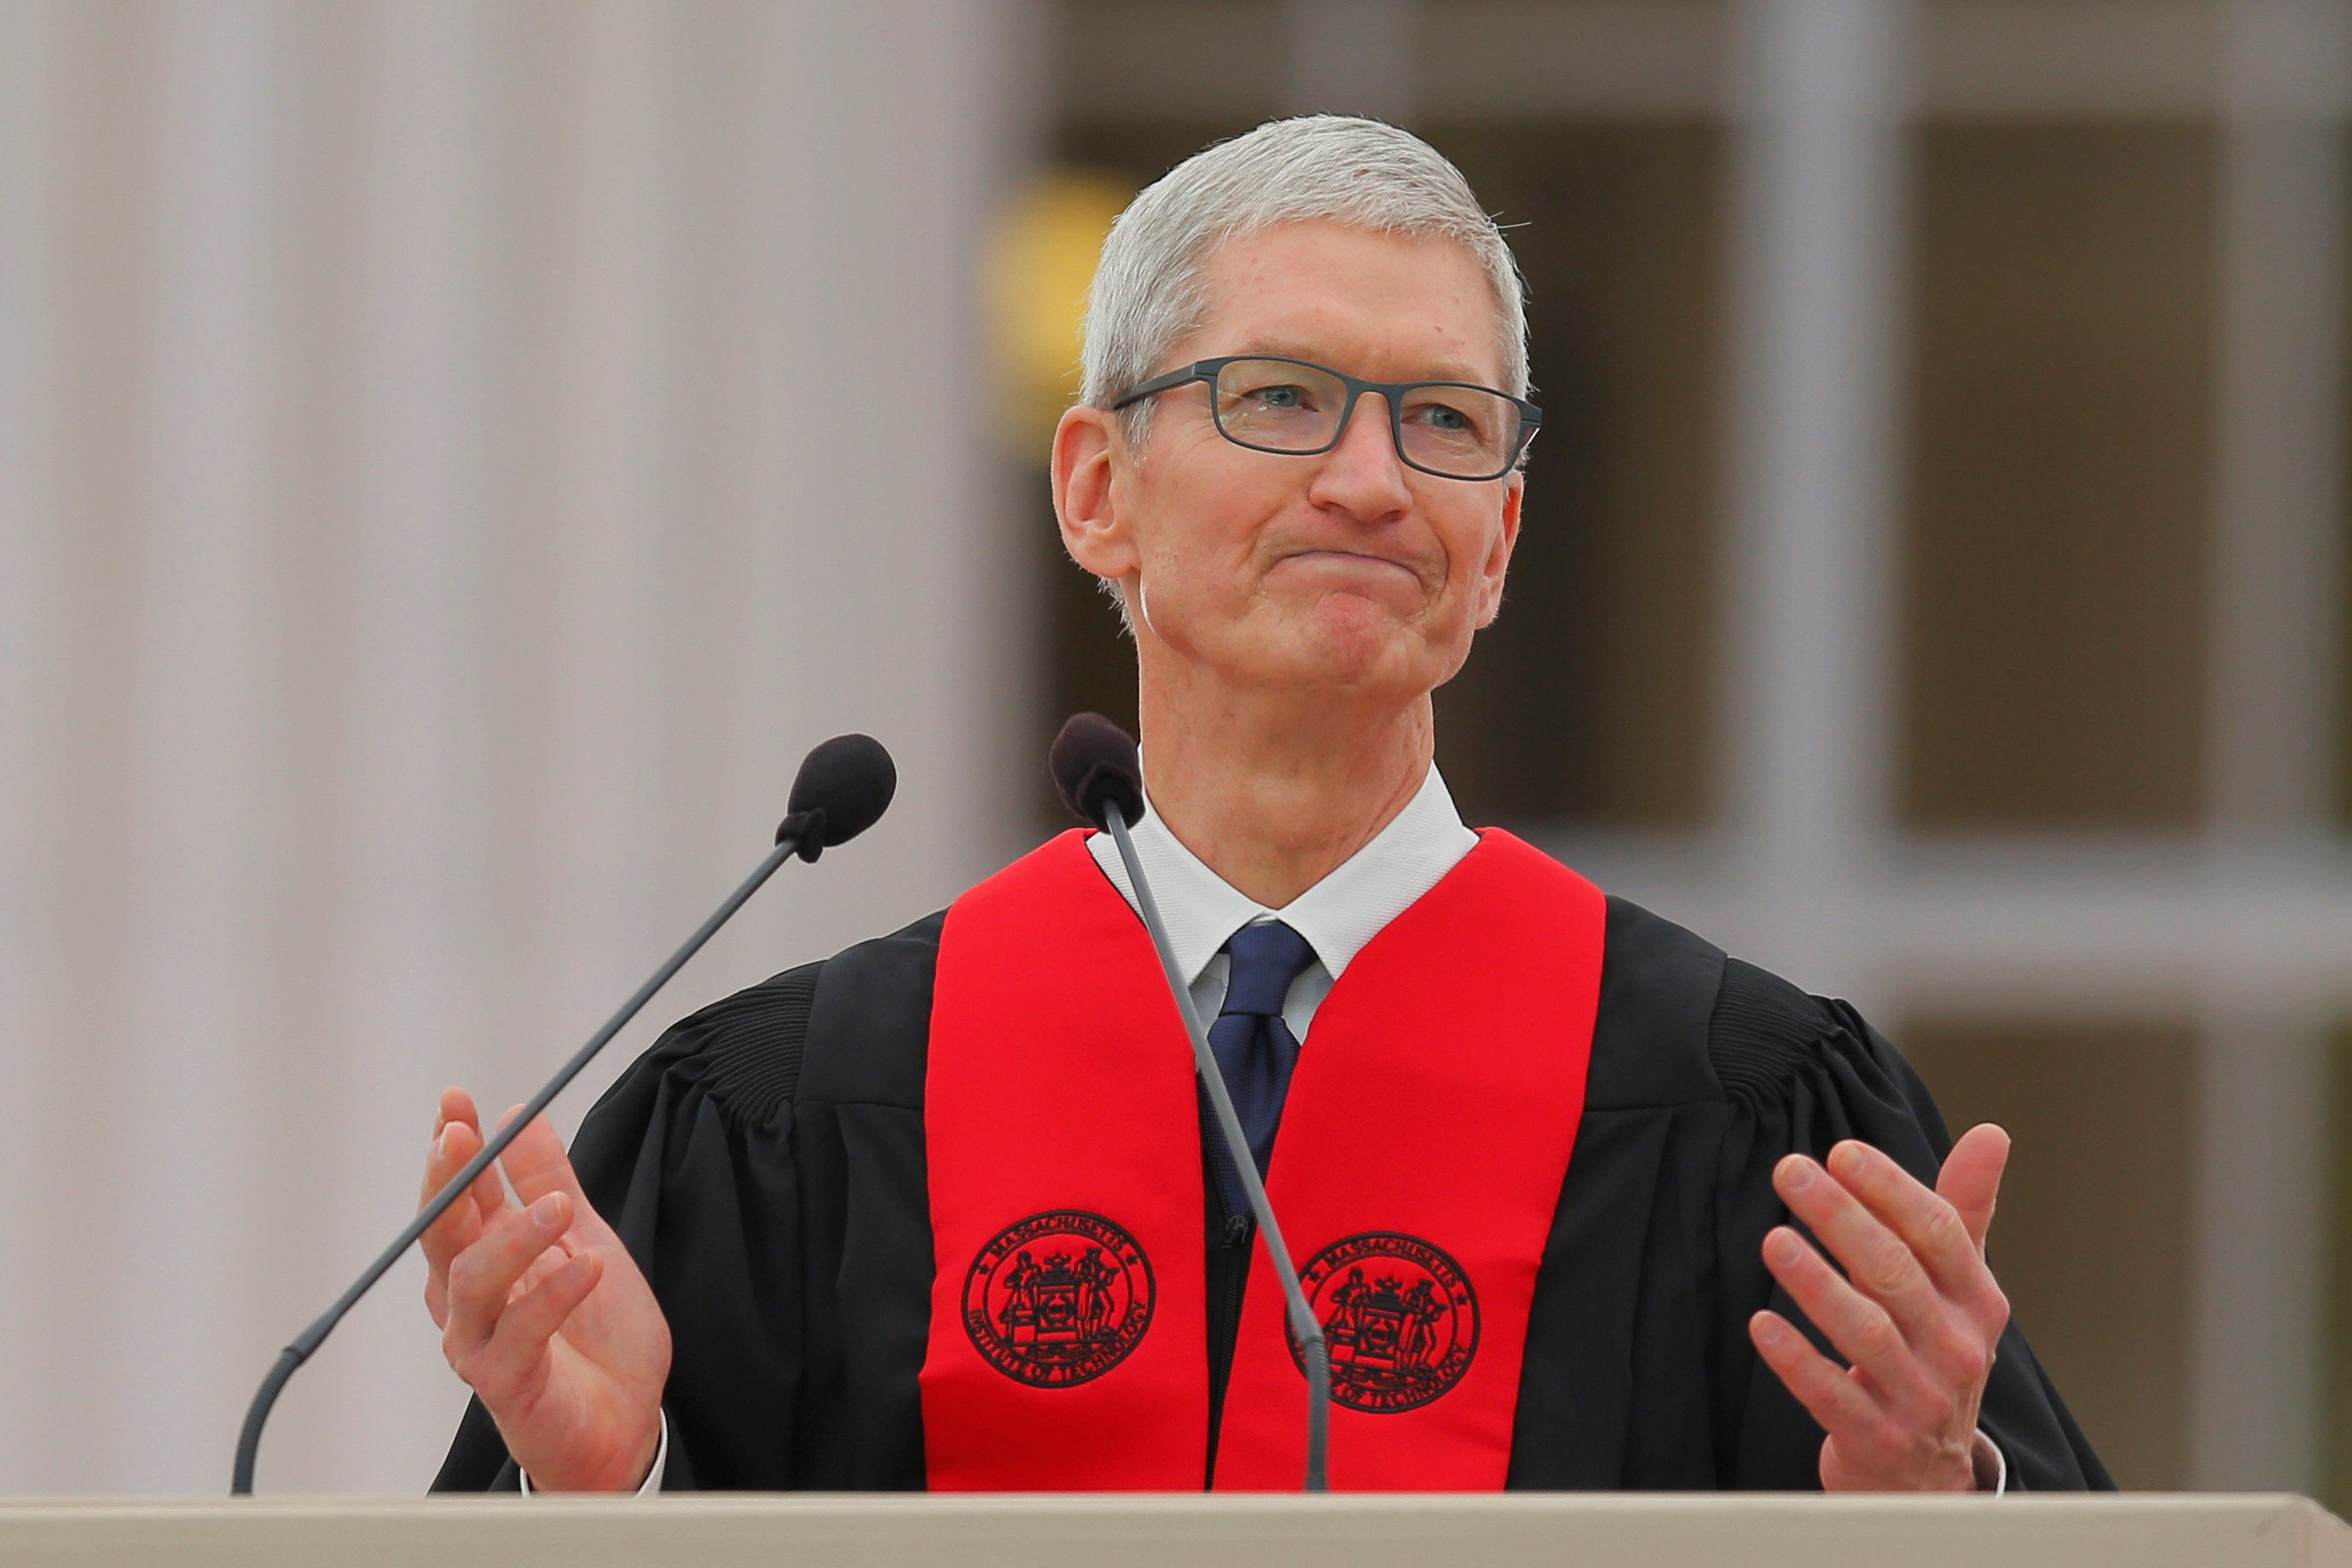 Apple CEO Tim Cook speaks during Commencement Exercises at Massachusetts Institute of Technology (MIT) in Cambridge, Massachusetts, U.S., June 9, 2017. REUTERS/Brian Snyder